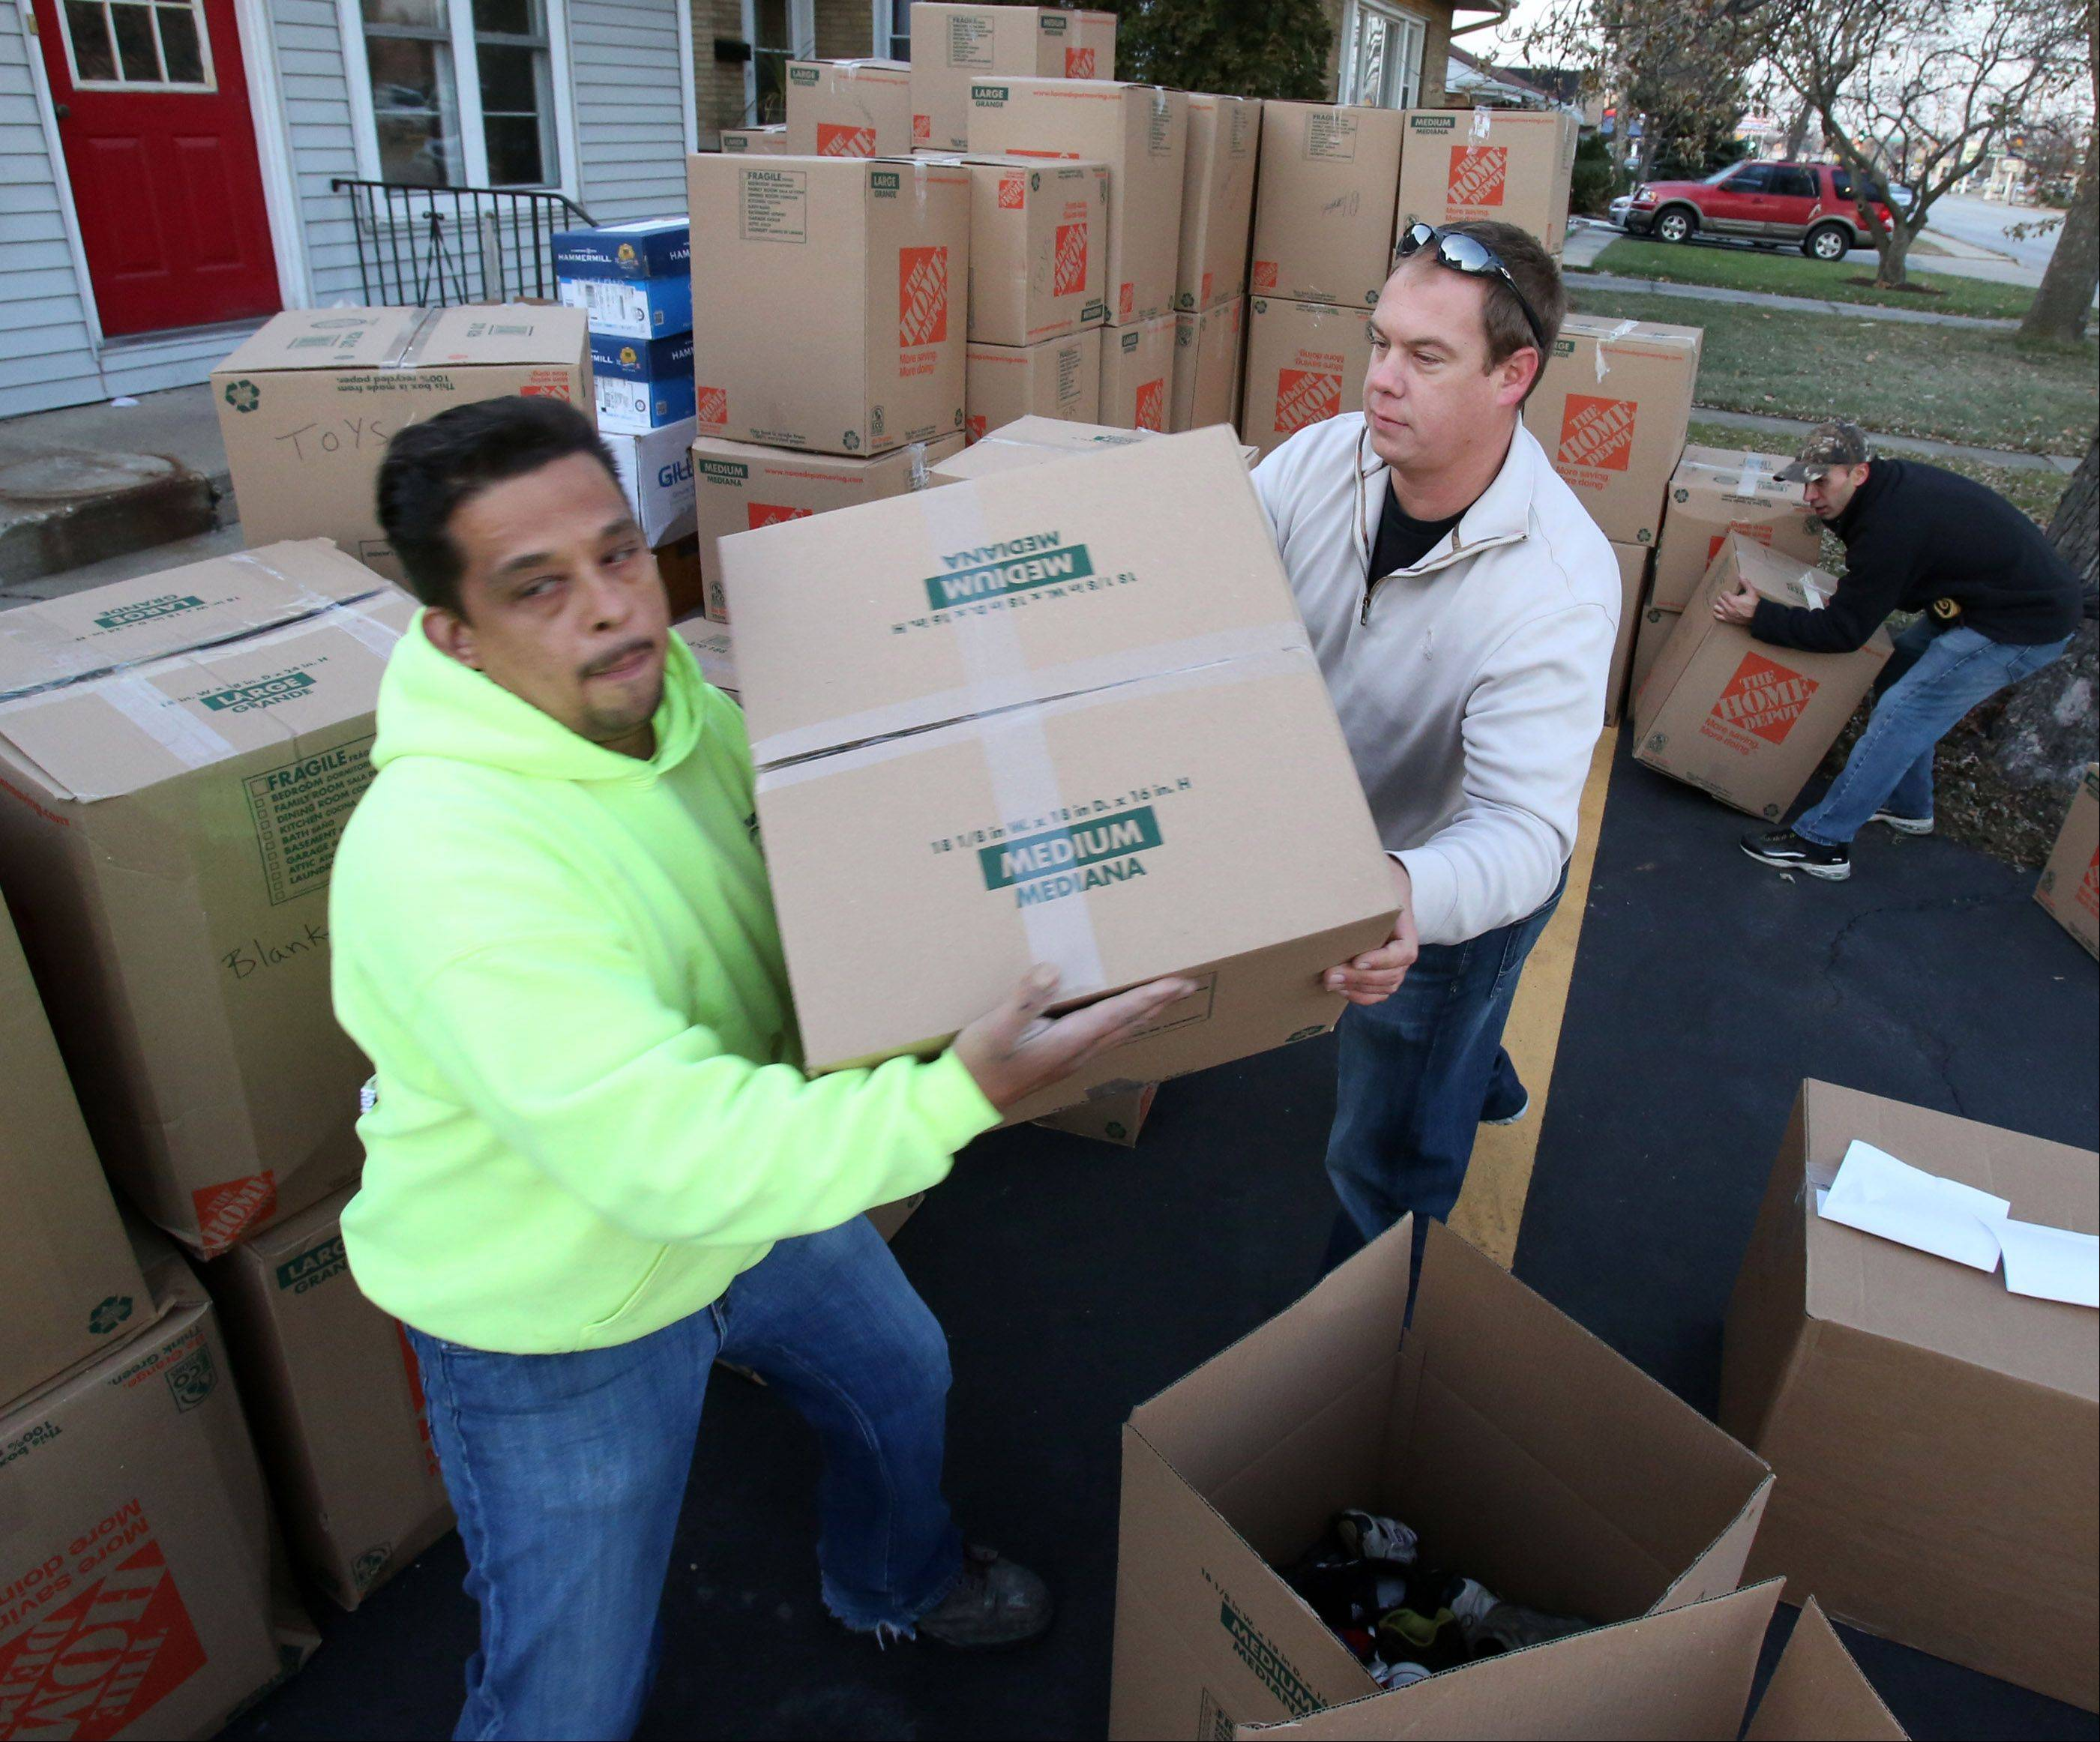 Eddie Guevara takes a box from North Village Group CEO Sean Sandona as workers from the Des Plaines-based construction supply firm load boxes filled with winter clothing, construction safety equipment, and general items into a truck on Friday in Des Plaines which are destined for tornado-ravaged Washington on Saturday.